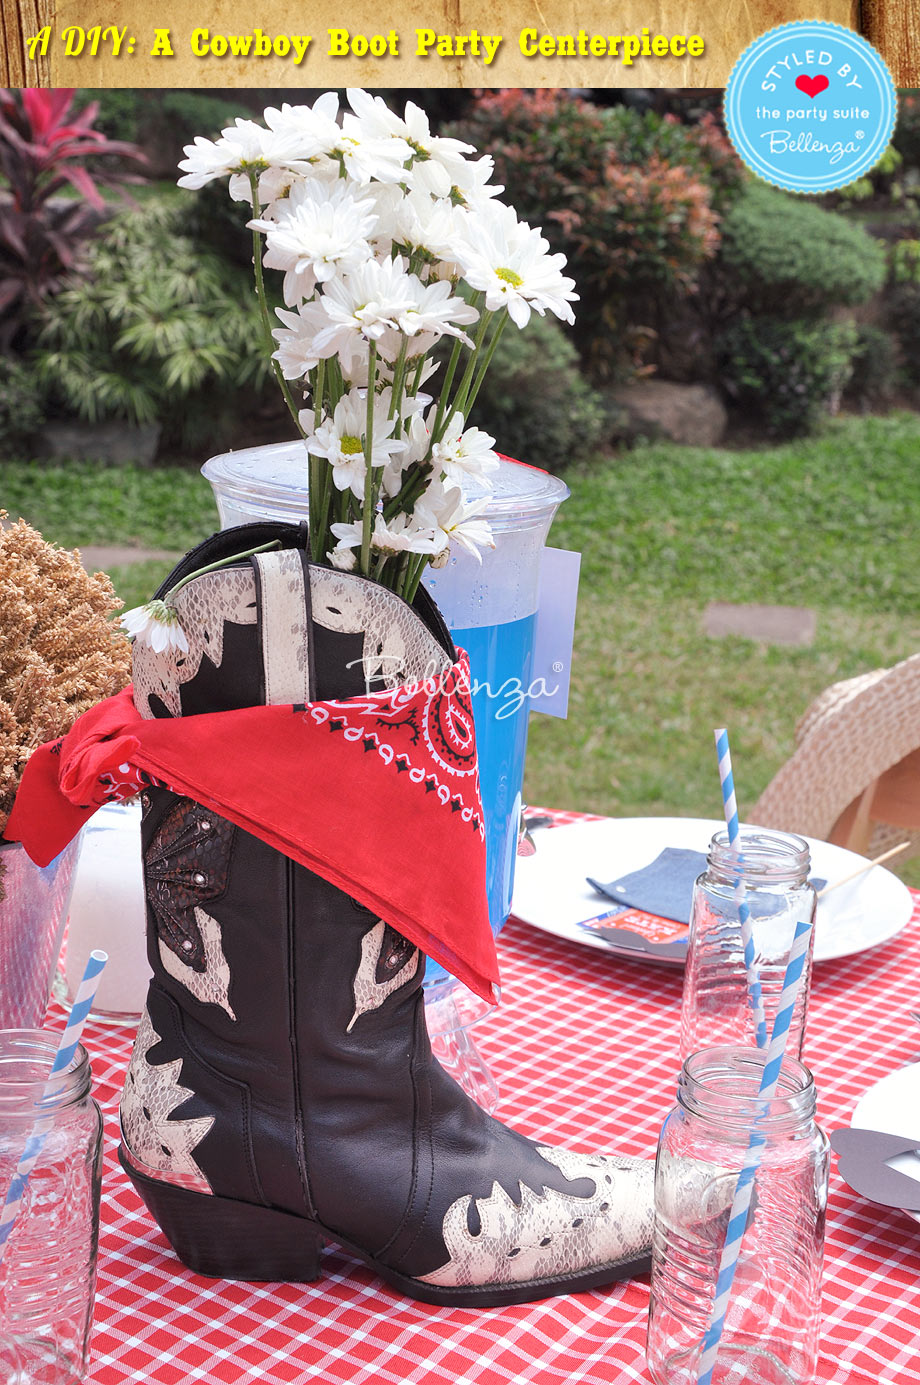 Cowboy Boot Party Centerpiece in Just 5 Steps!